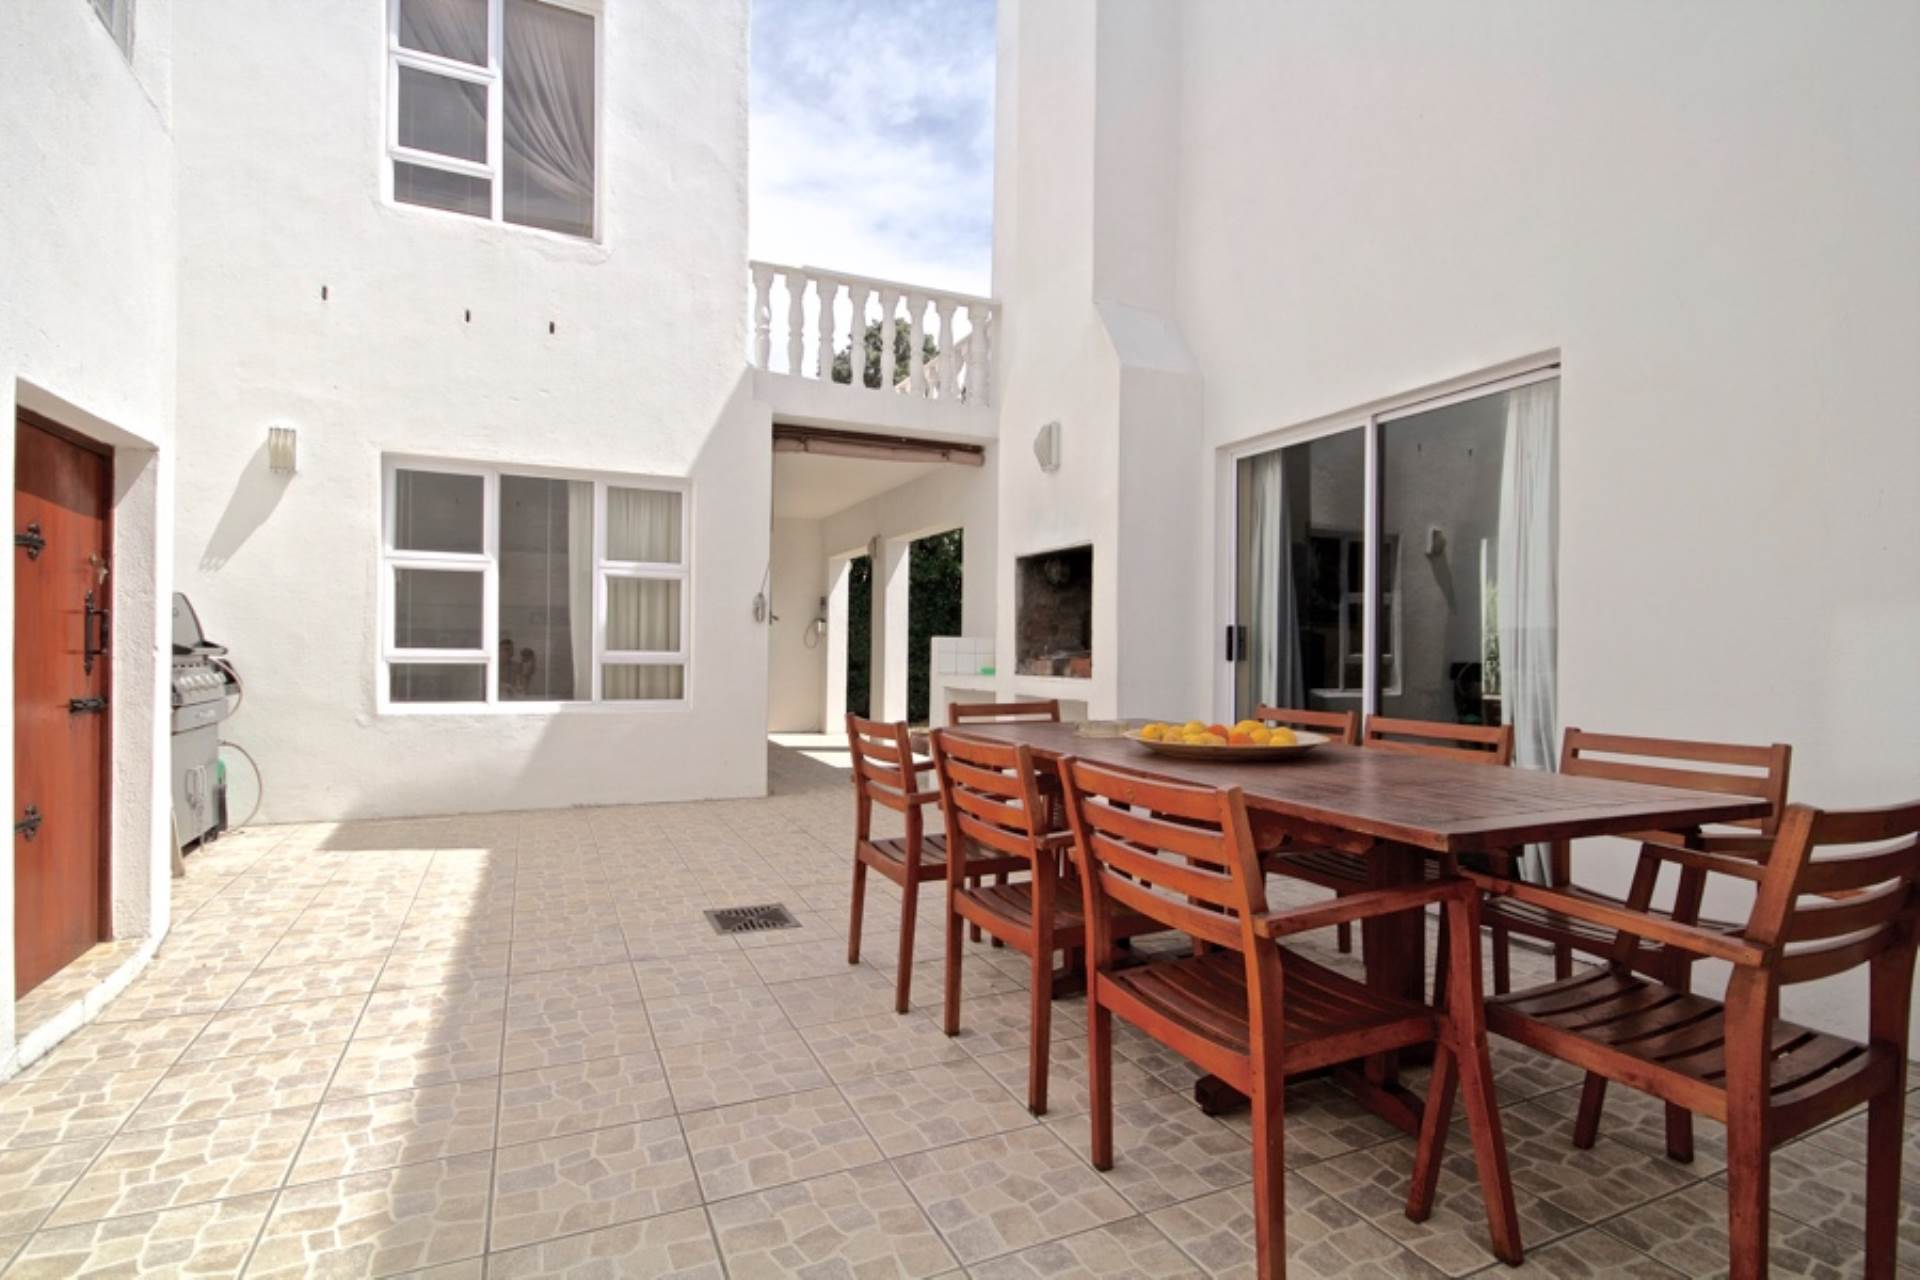 Piazza - Sunny Courtyard for entertaining with jacuzzi